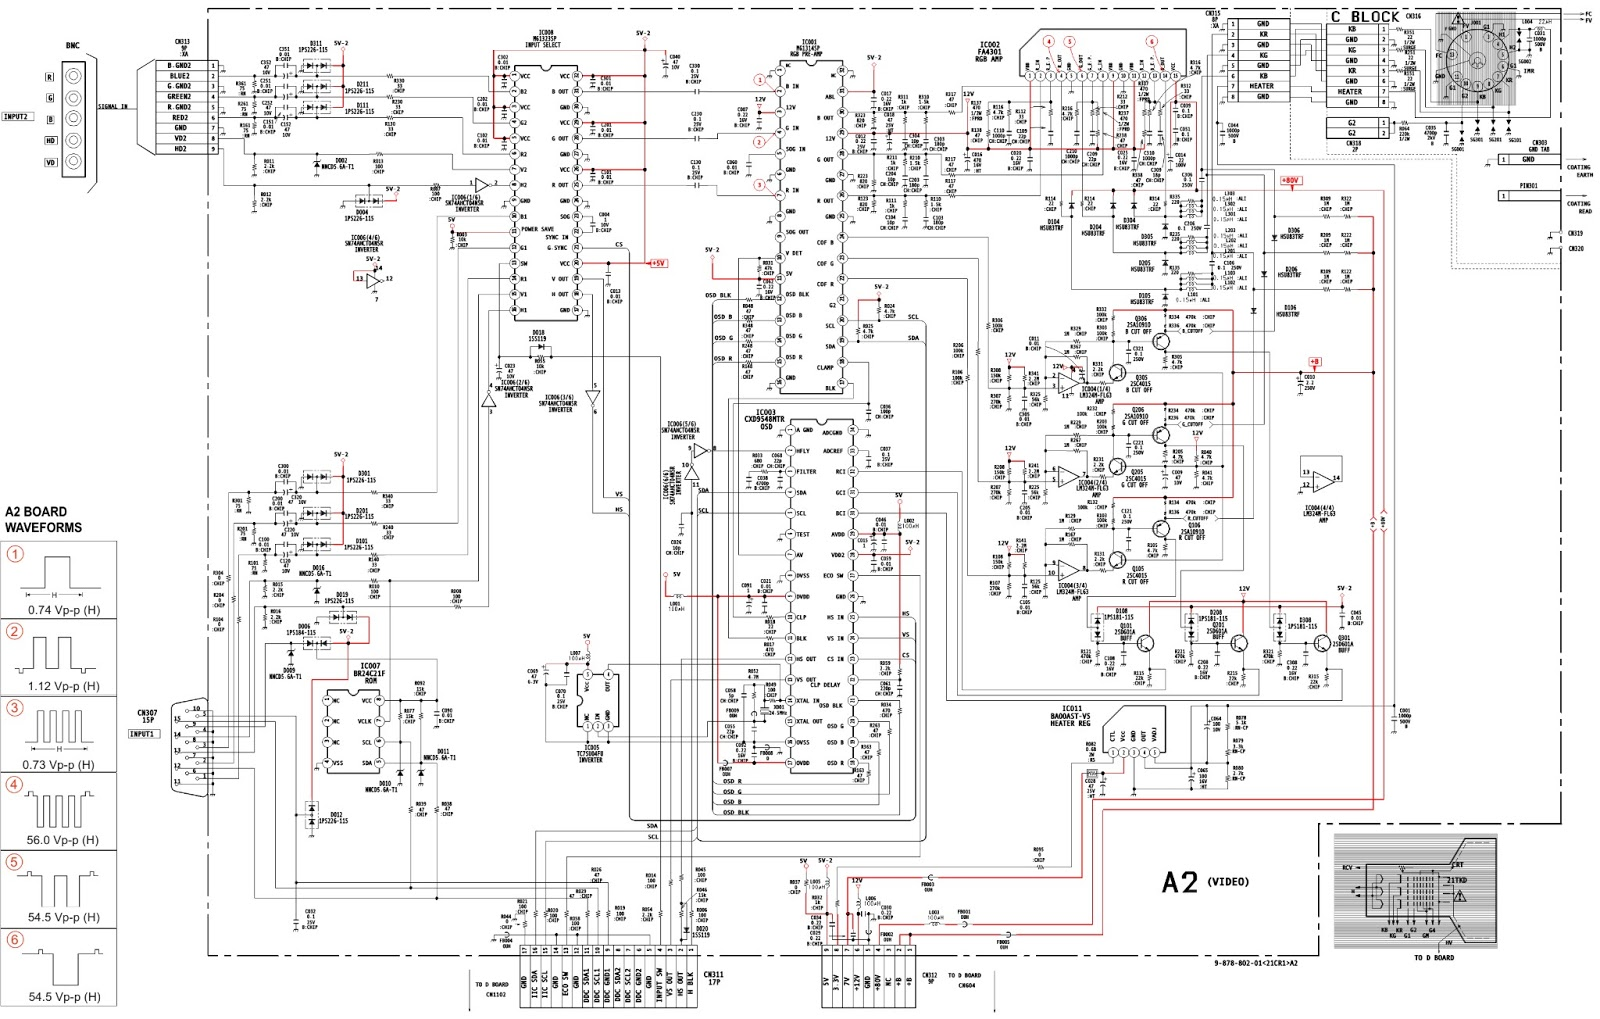 Ps4 Controller Schematic ls5xsINq9gq9P1ji1DO 7CiIVE714rgmCFBwJa4eCXAzk on acer laptop diagram